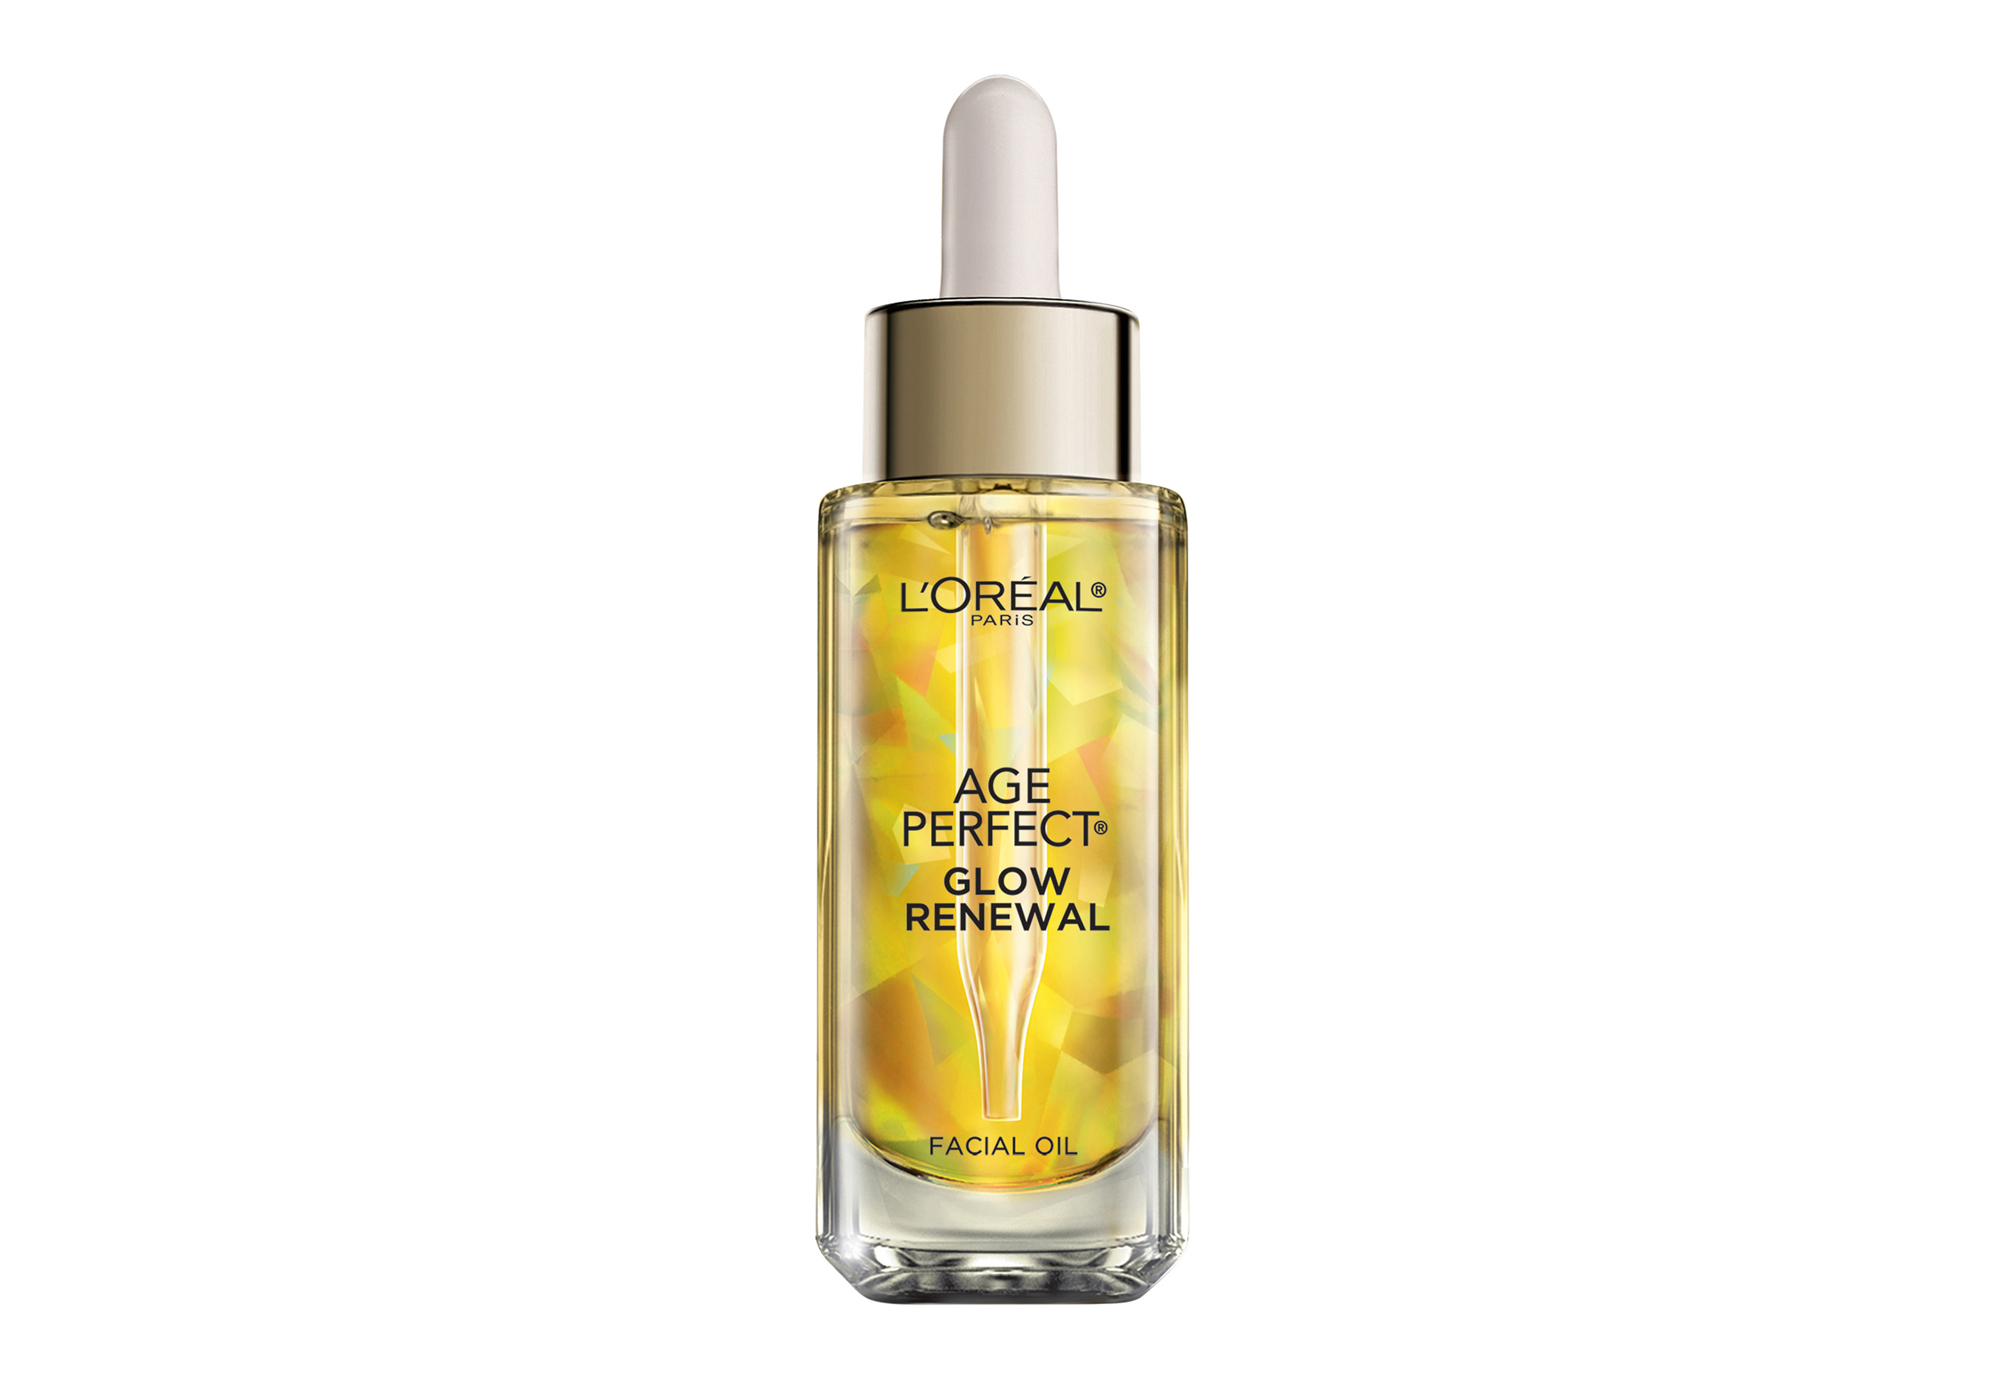 L'Oréal Paris Age Perfect Cell Renewal Facial Oil